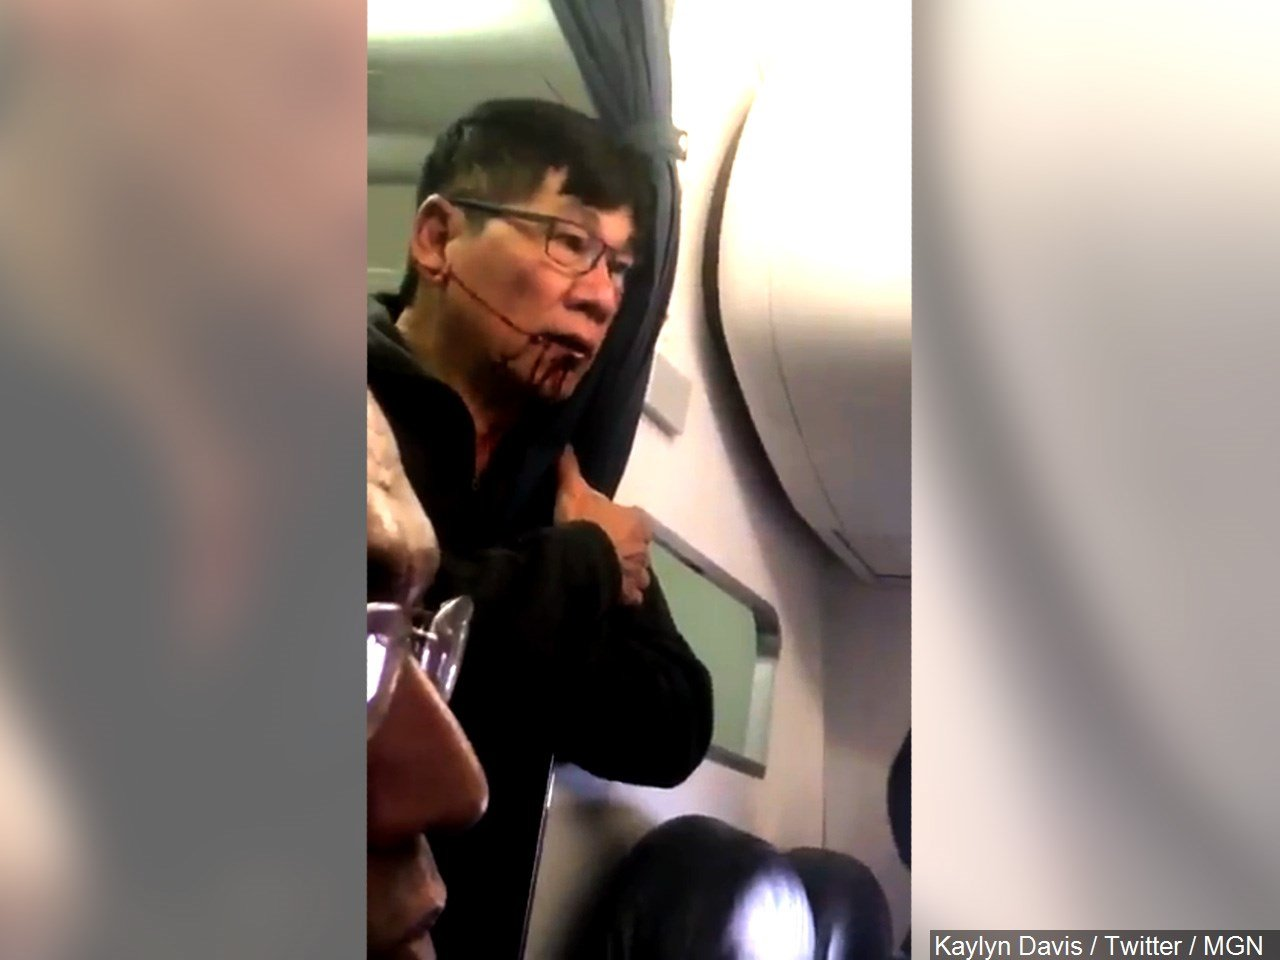 Kentucy doctor dragged off of flight says it's too late for apologies / Courtesy of MGN Online